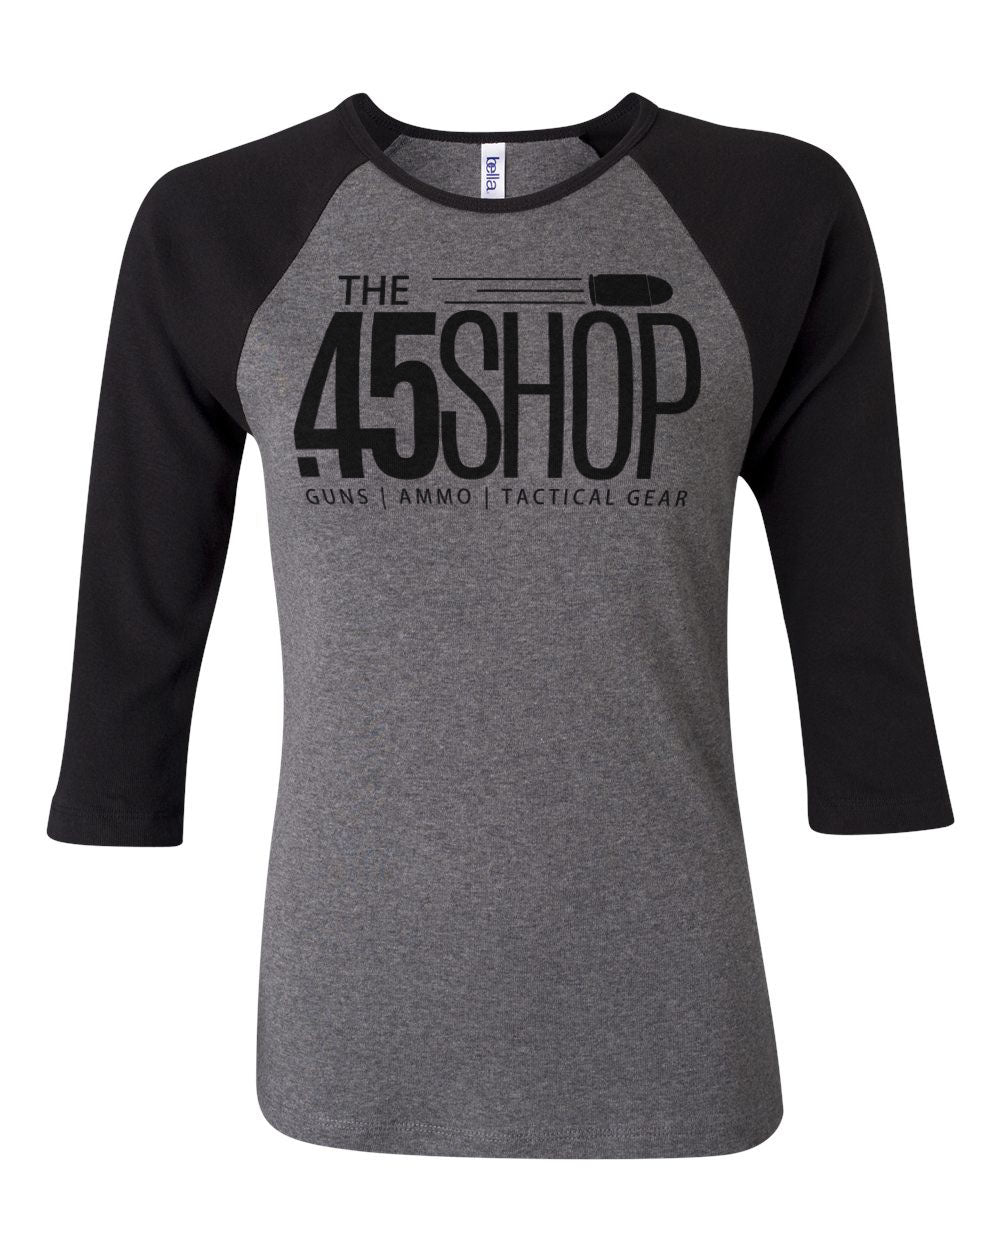 THE .45 SHOP WOMEN'S BASEBALL T-SHIRTS